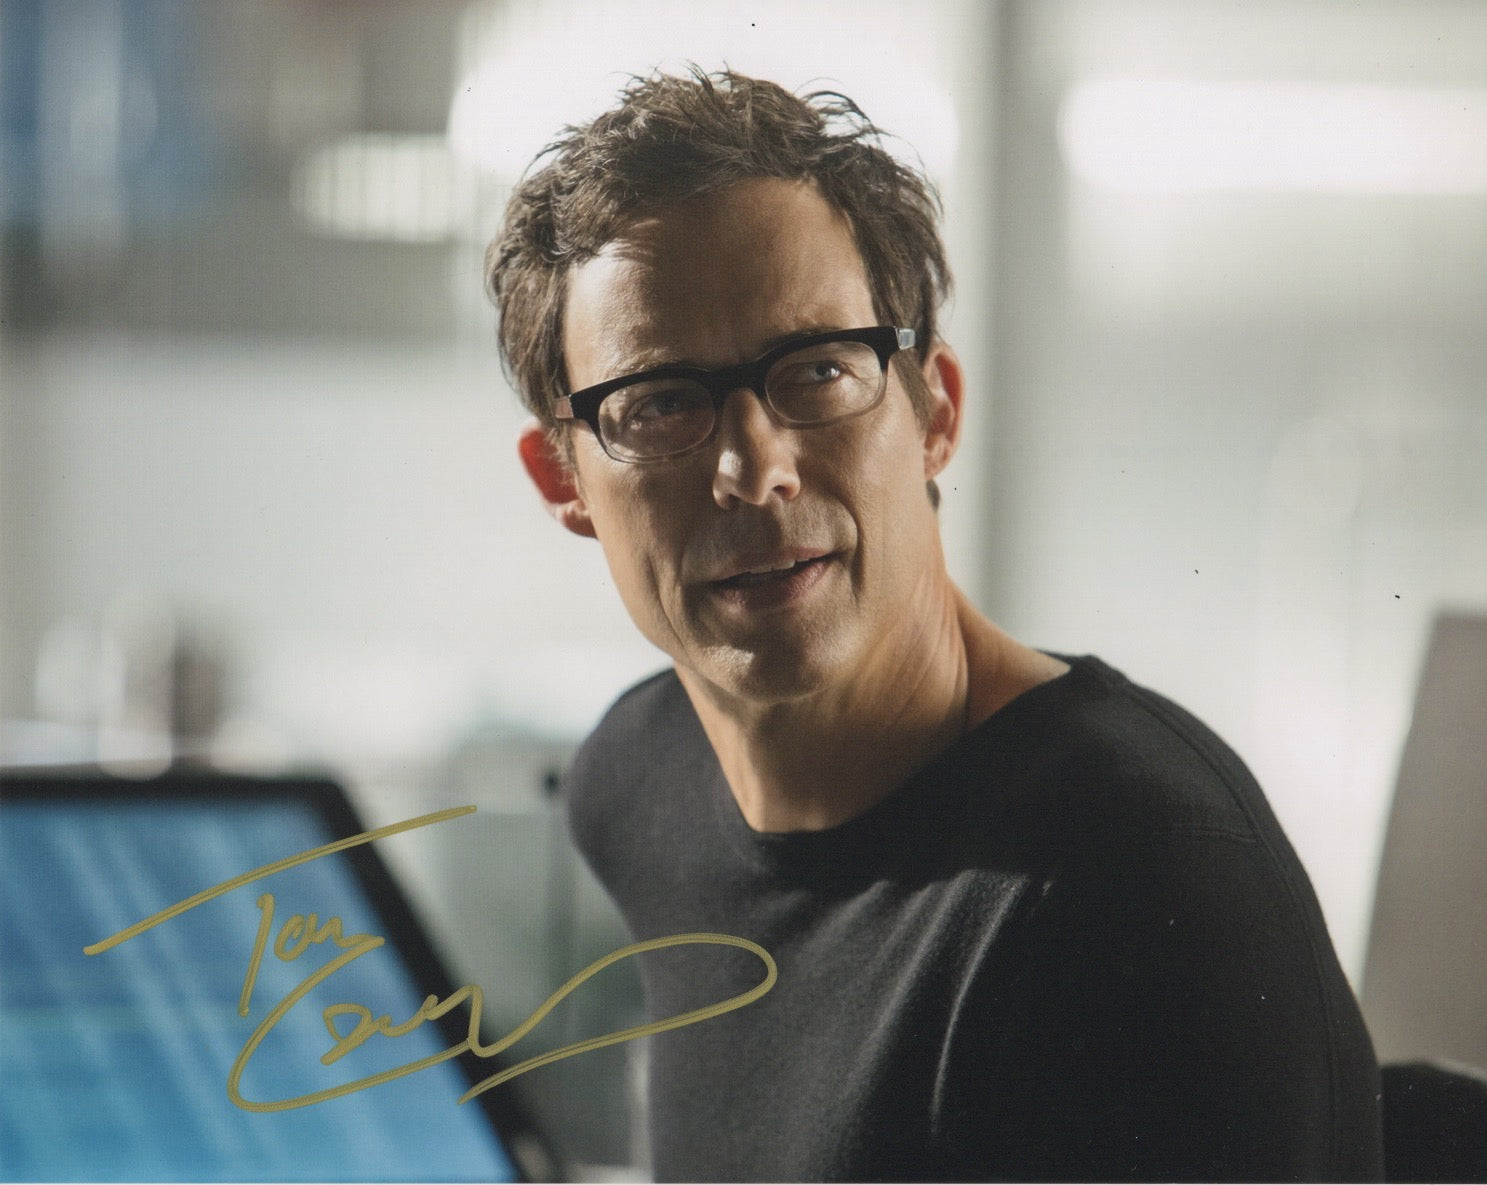 Tom Cavanagh The Flash Signed Autograph 8x10 Photo #8 - Outlaw Hobbies Authentic Autographs